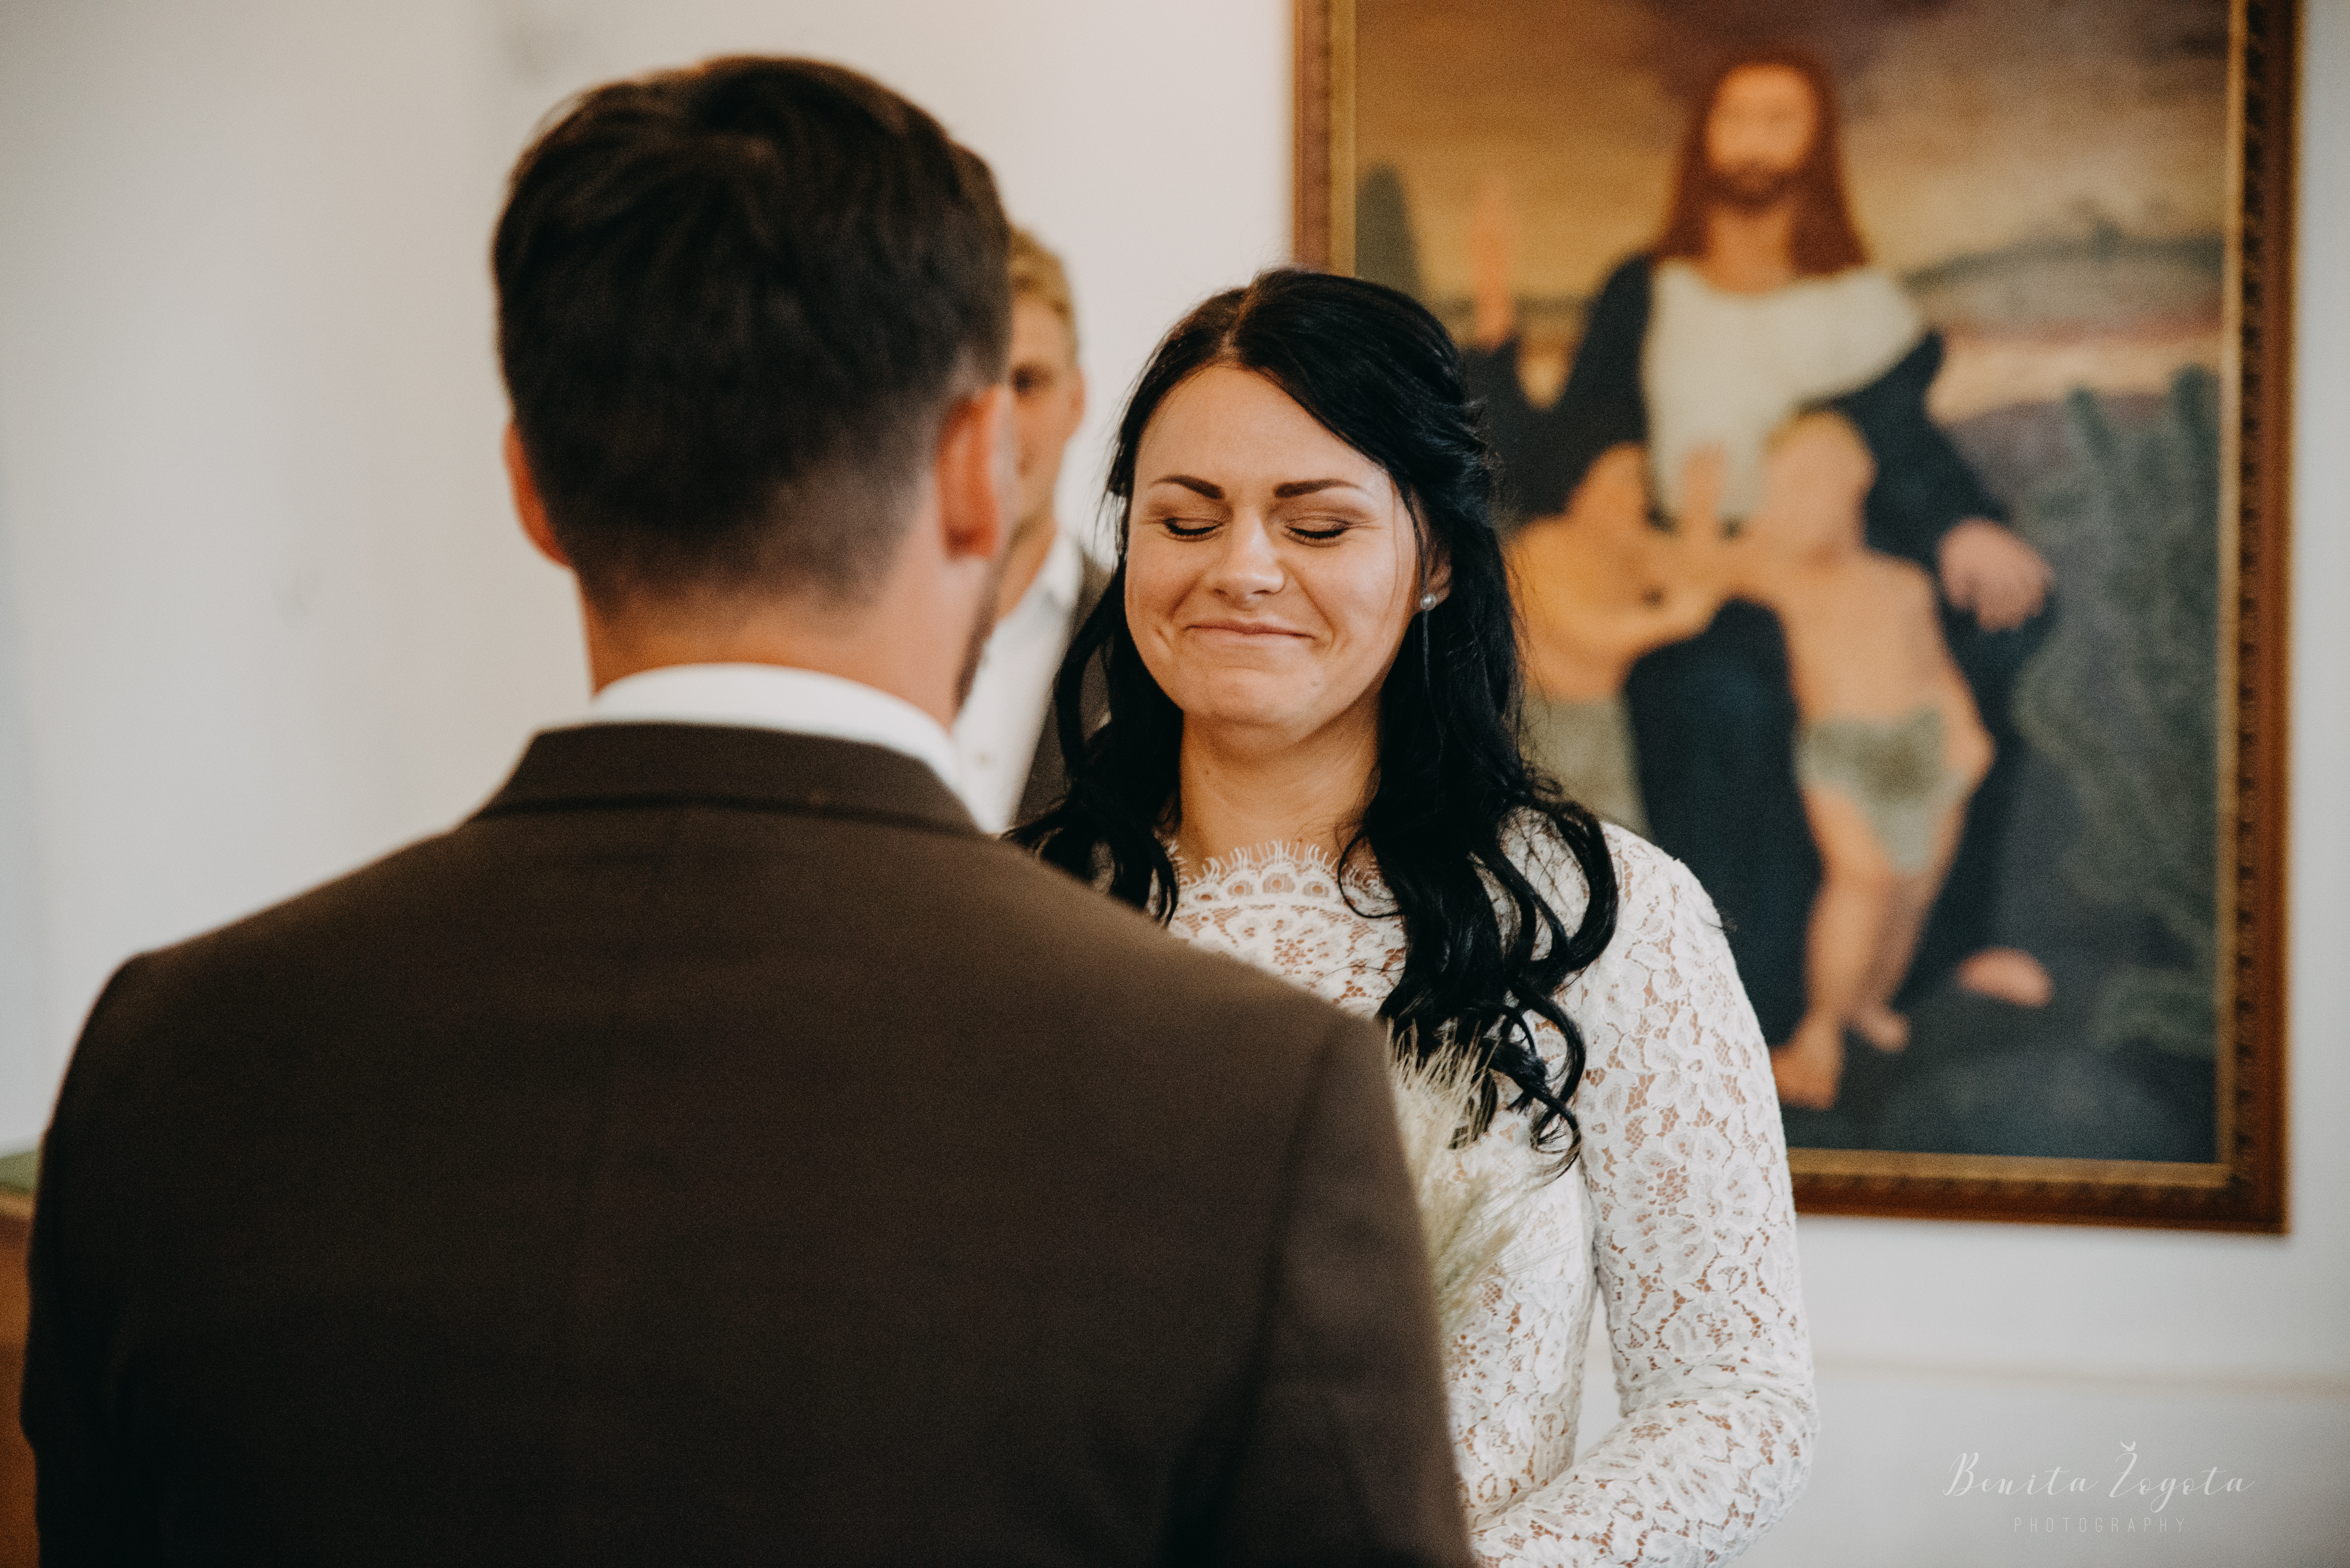 wedding_day-73